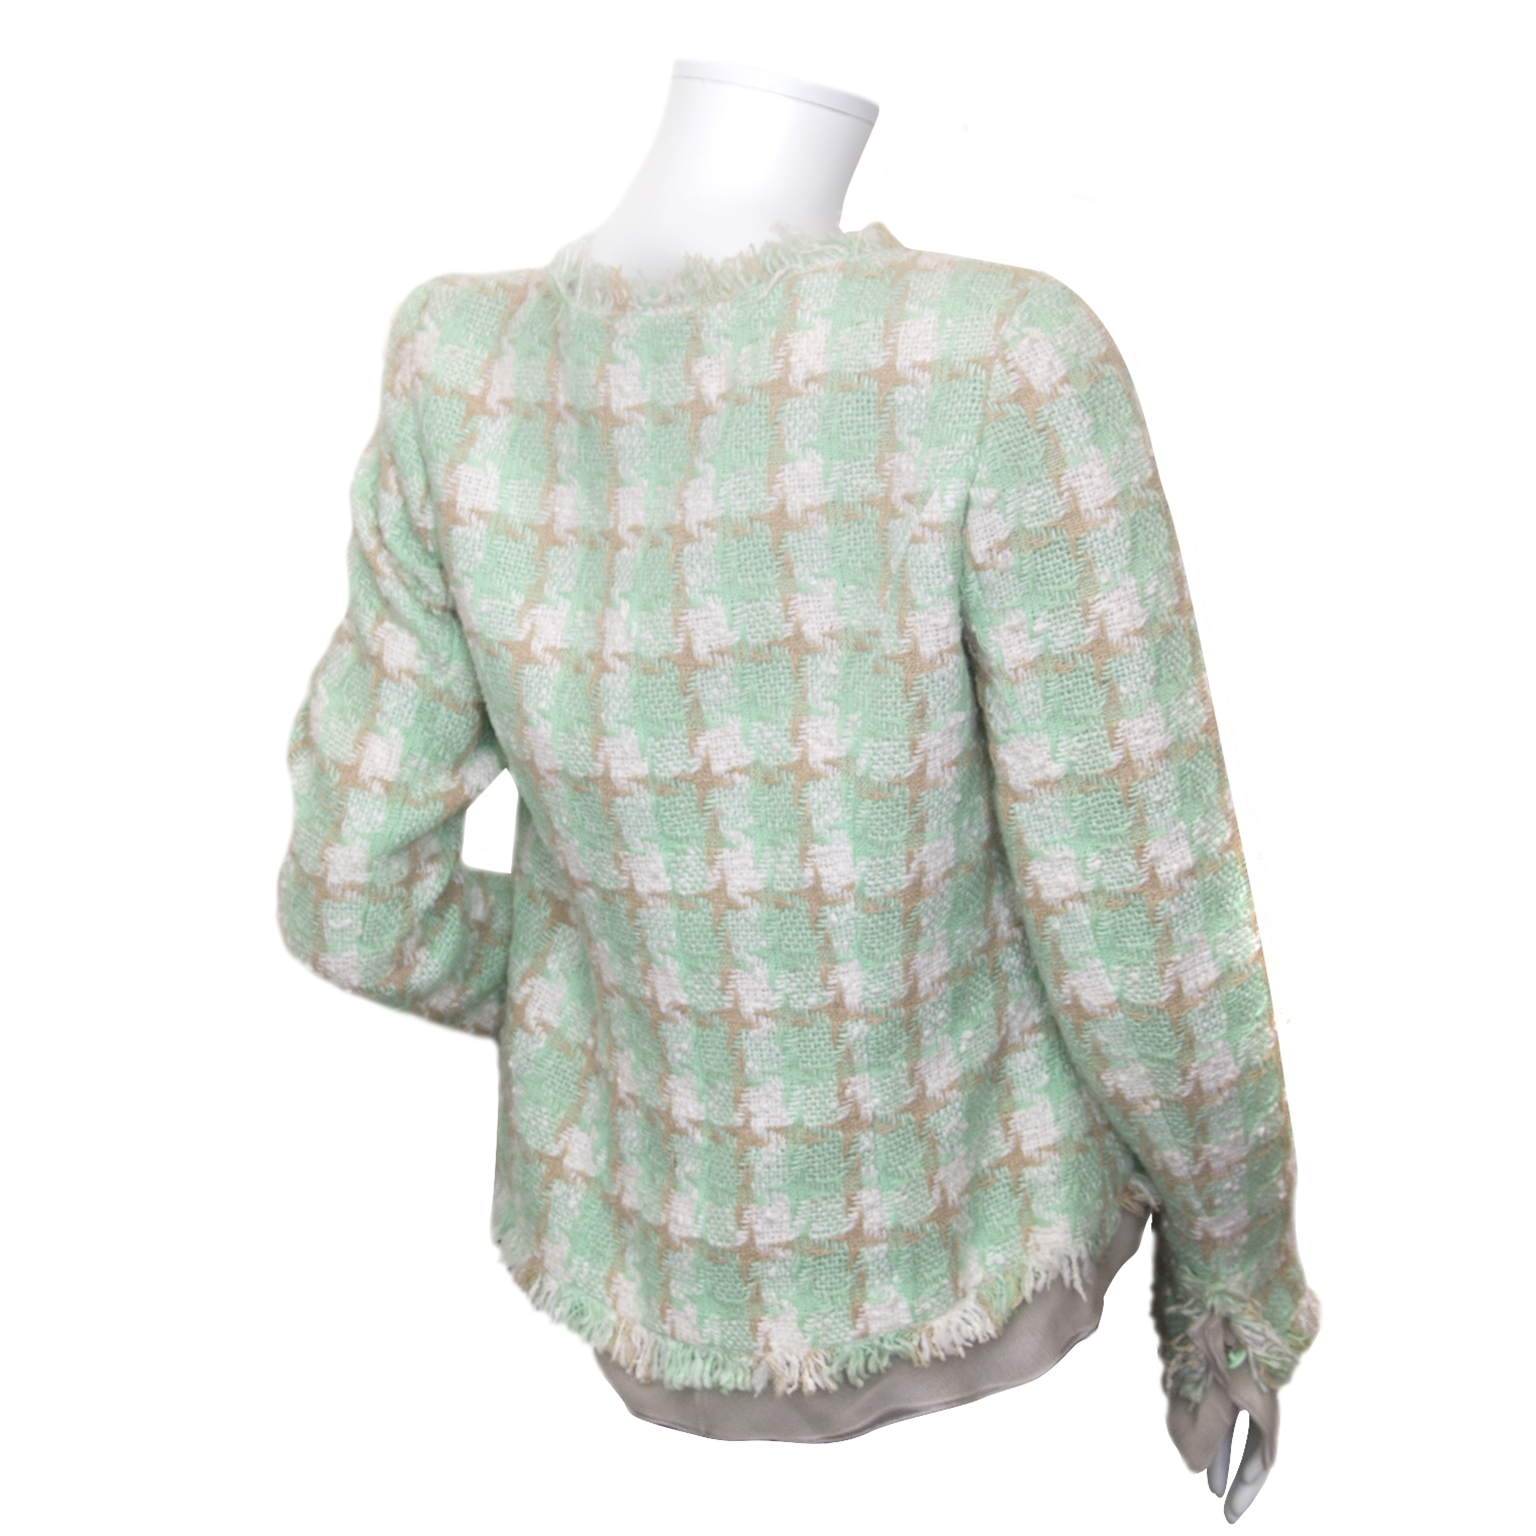 chanel green tweed blazer now for sale at labellov vintage fashion webshop belgium